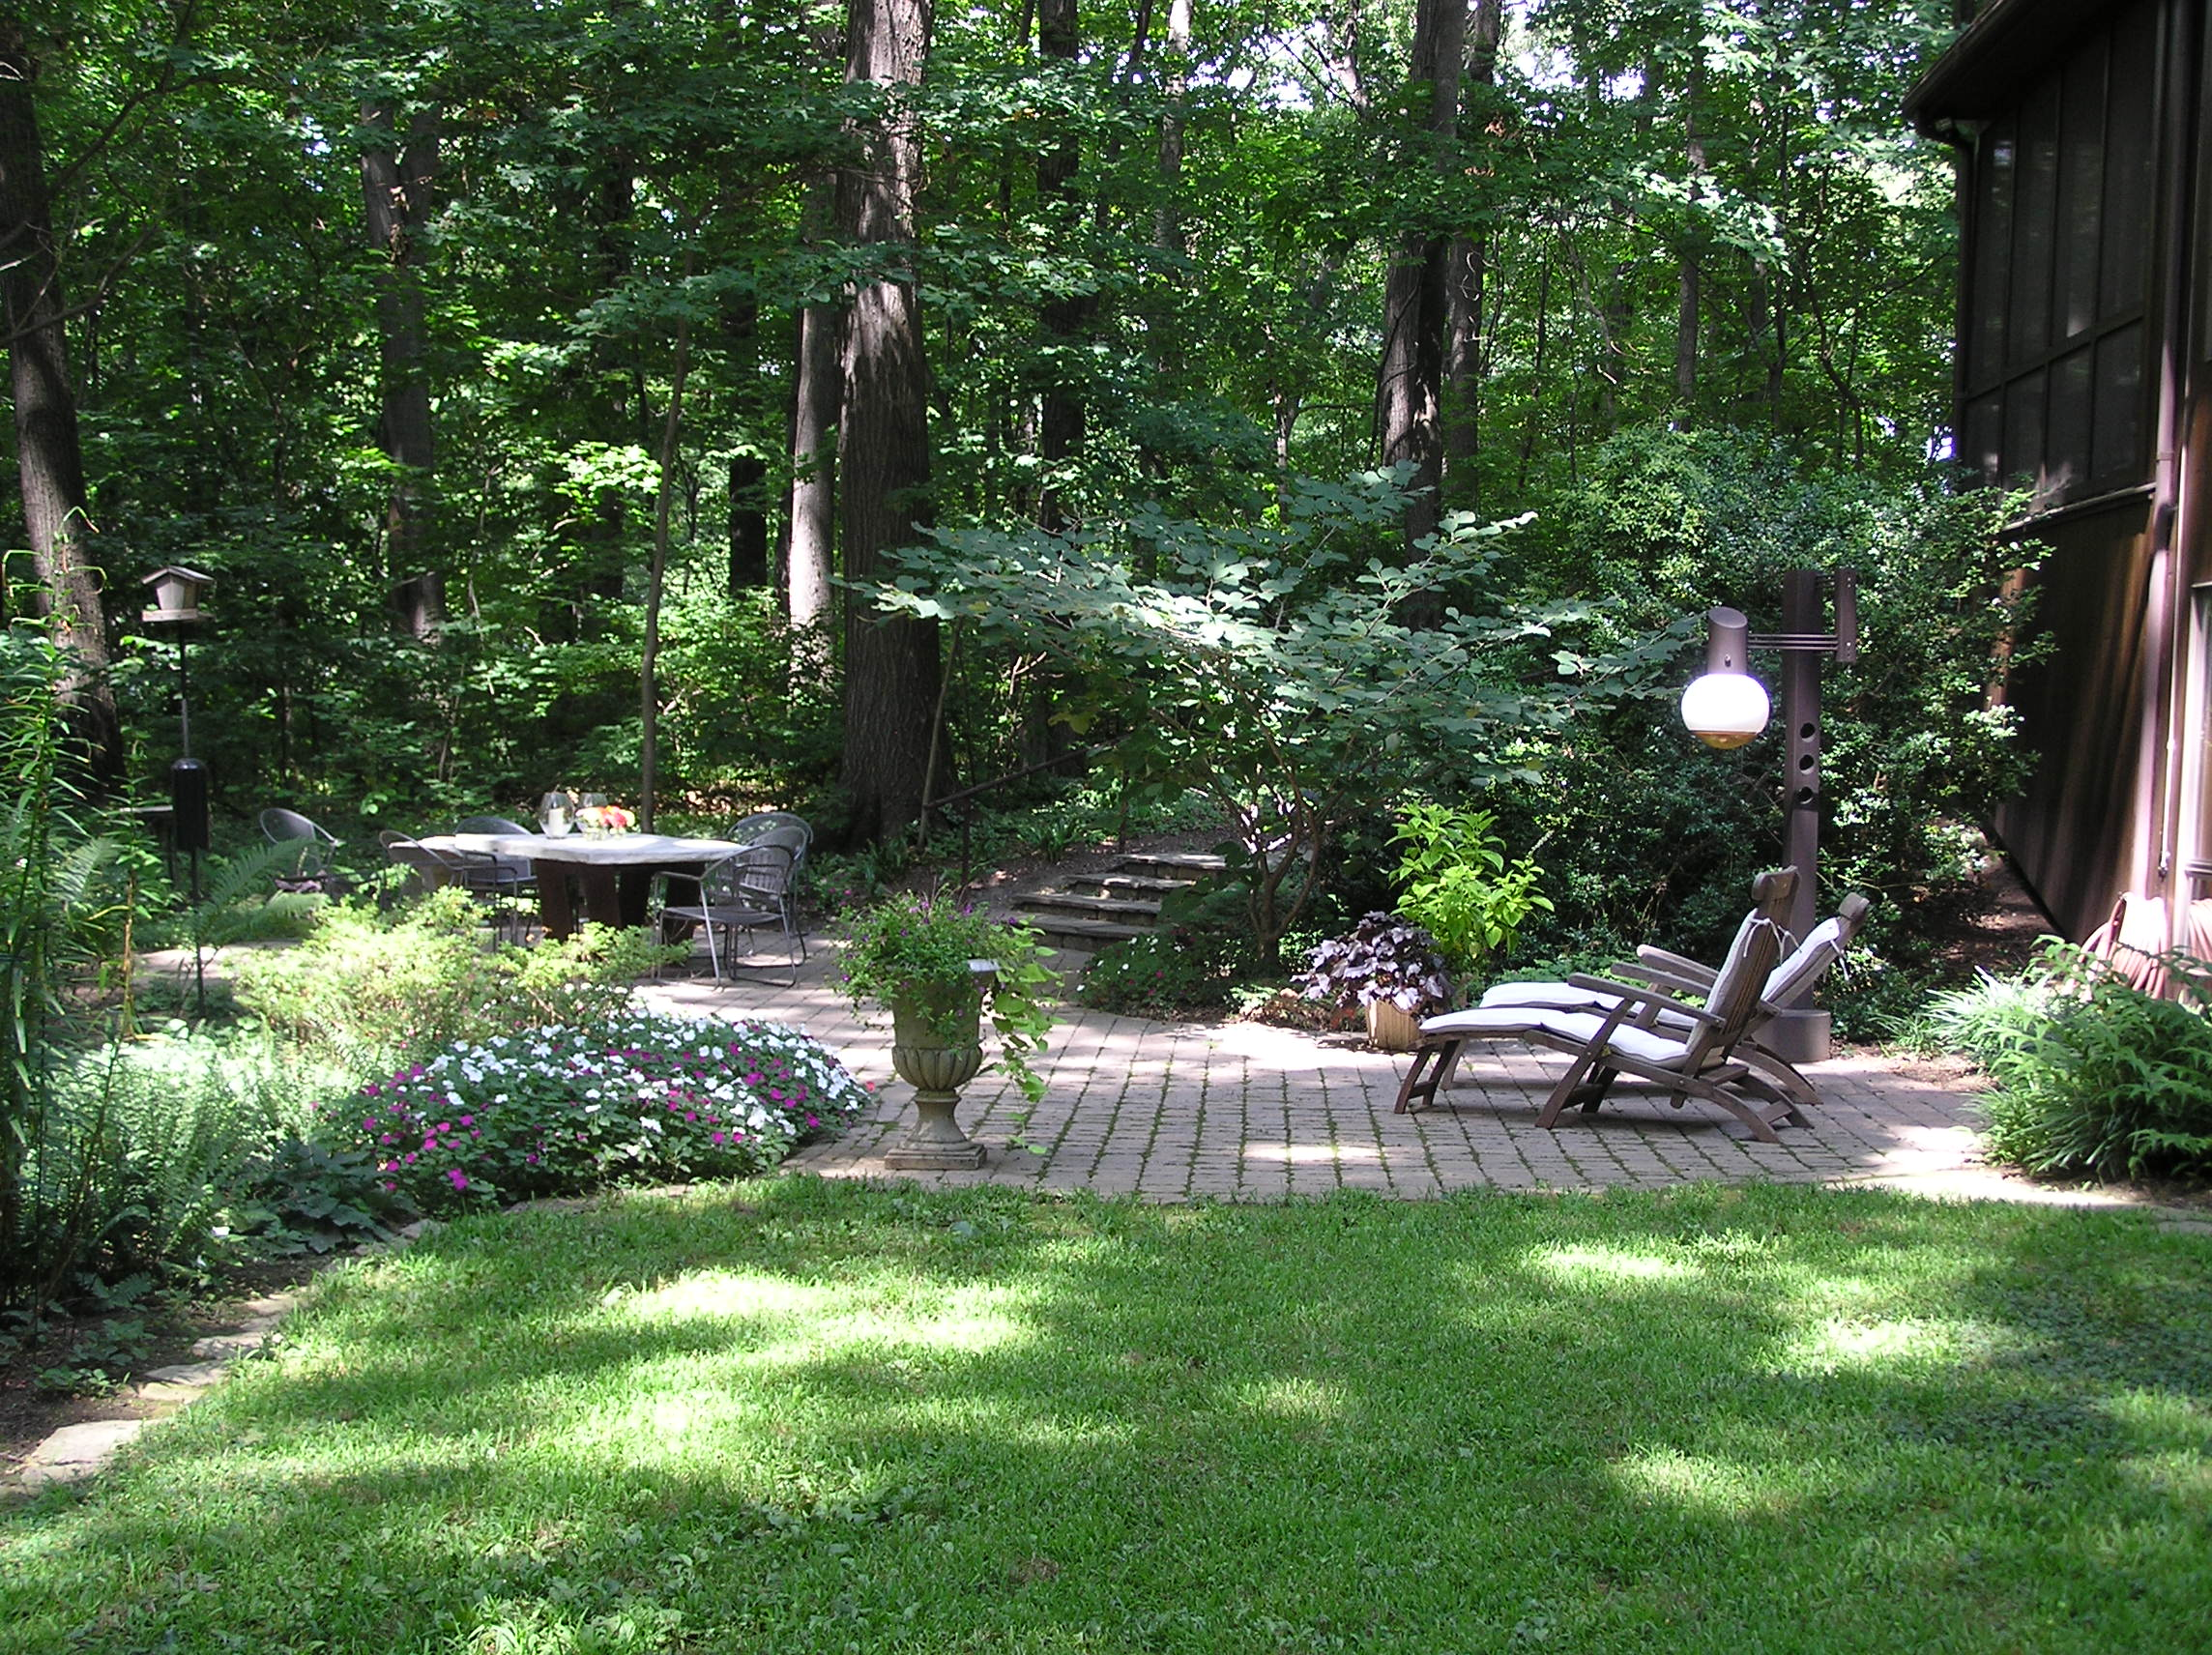 Uncategorized garden design blog Beautiful and shady home garden design ideas